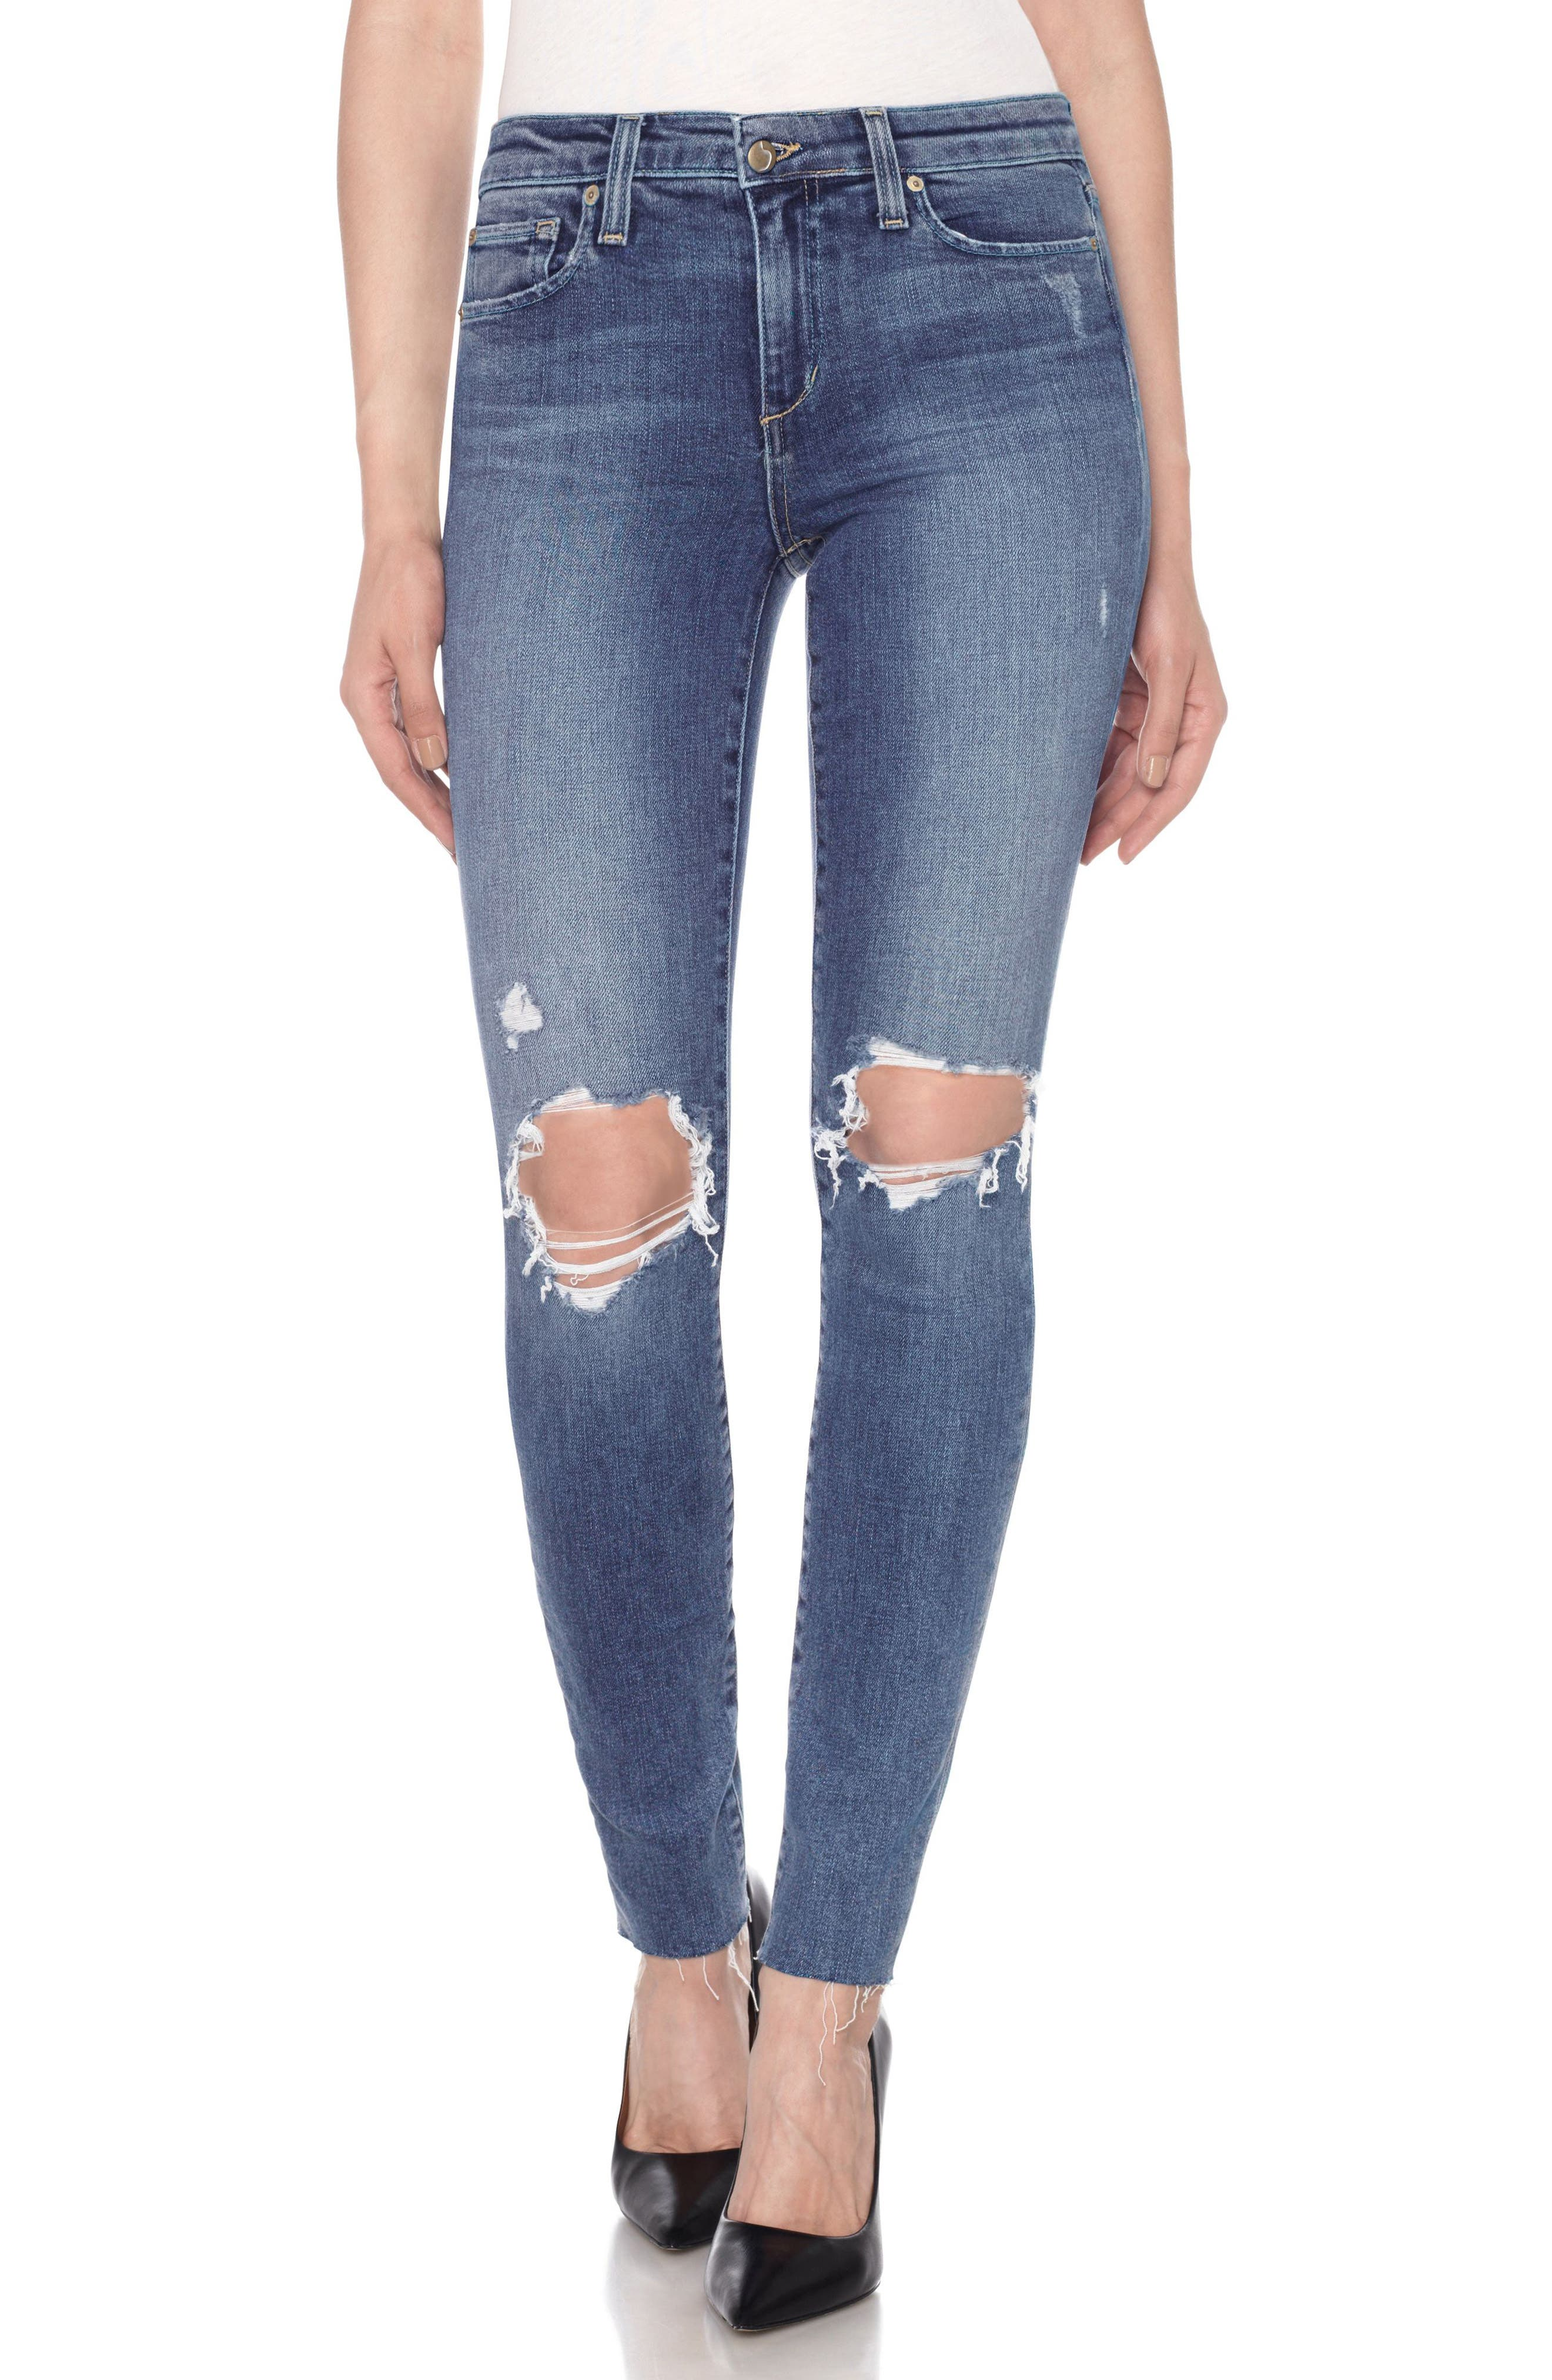 Icon High Waist Skinny Jeans,                             Main thumbnail 1, color,                             415